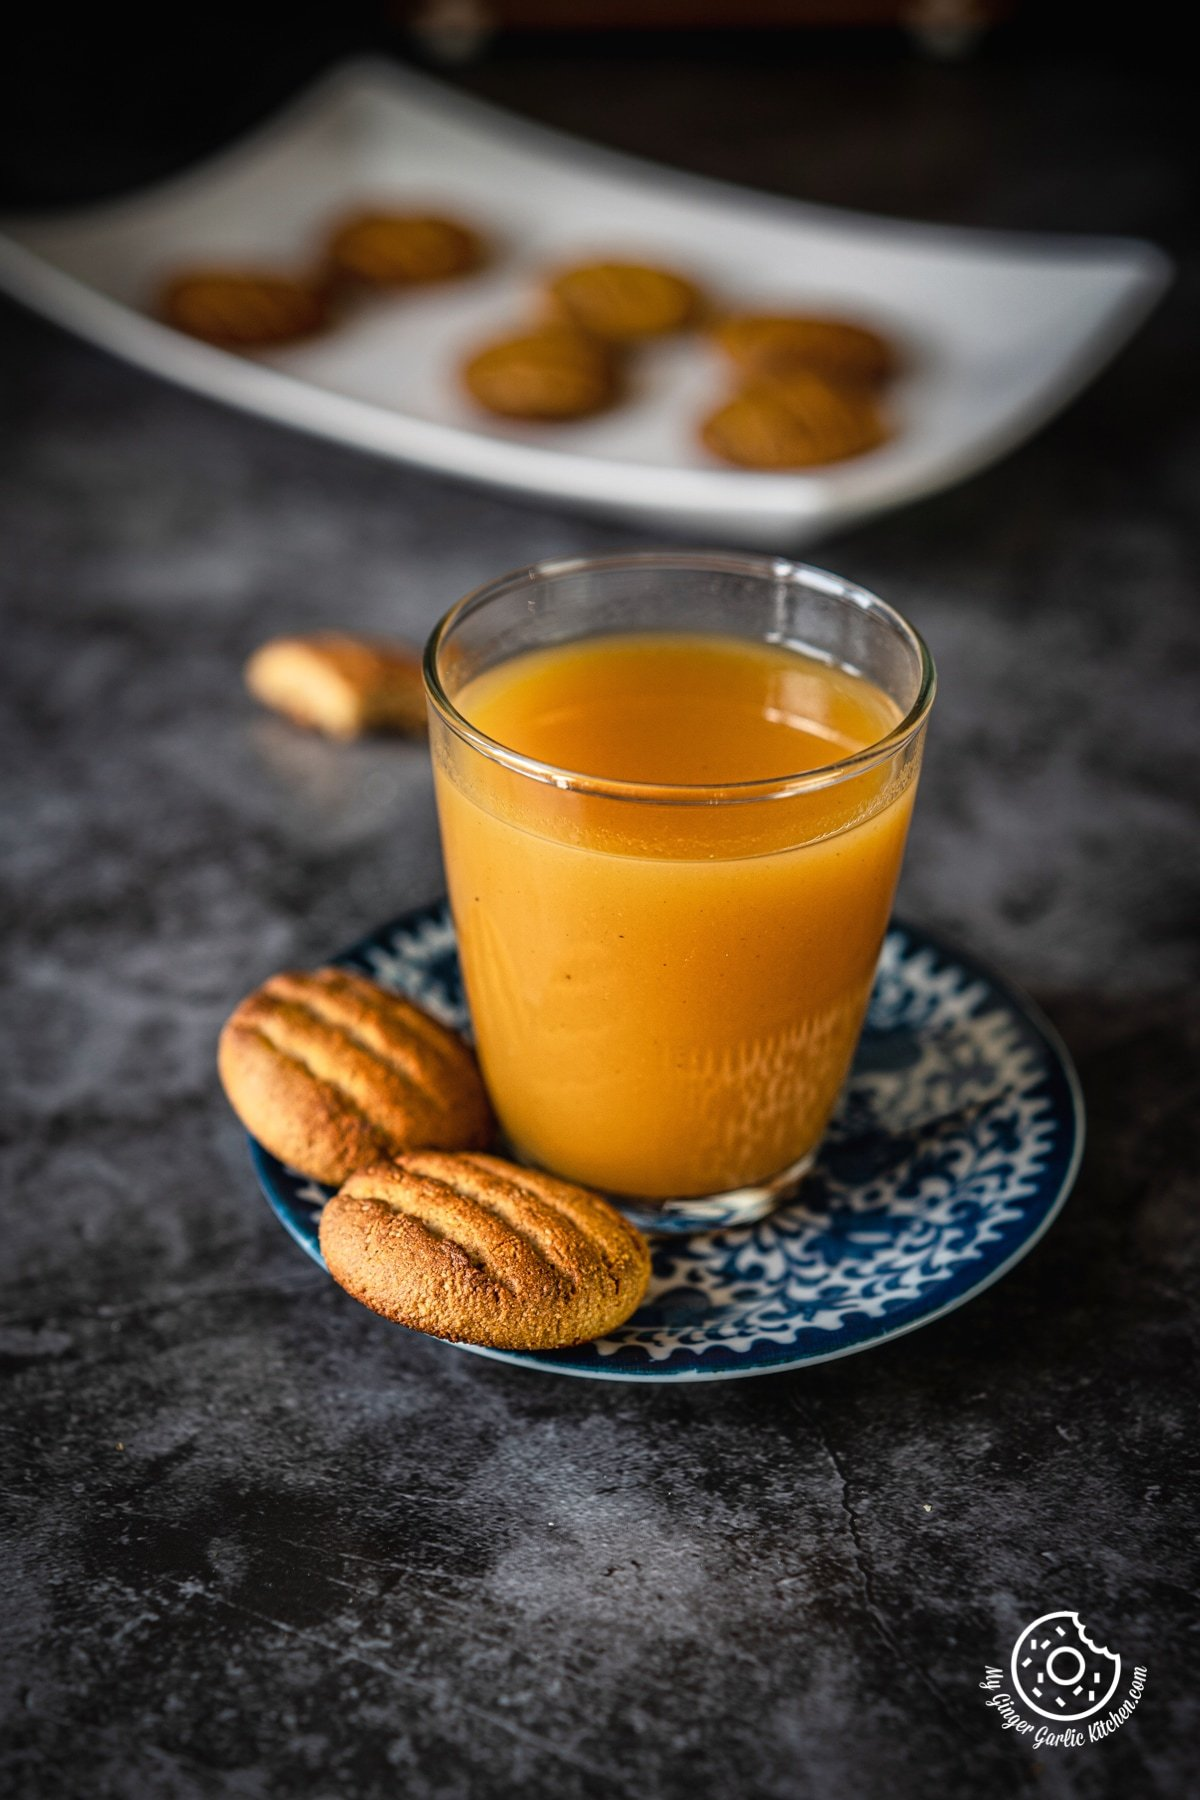 two almond flour cookies in a blue plate with a glass of orange juice